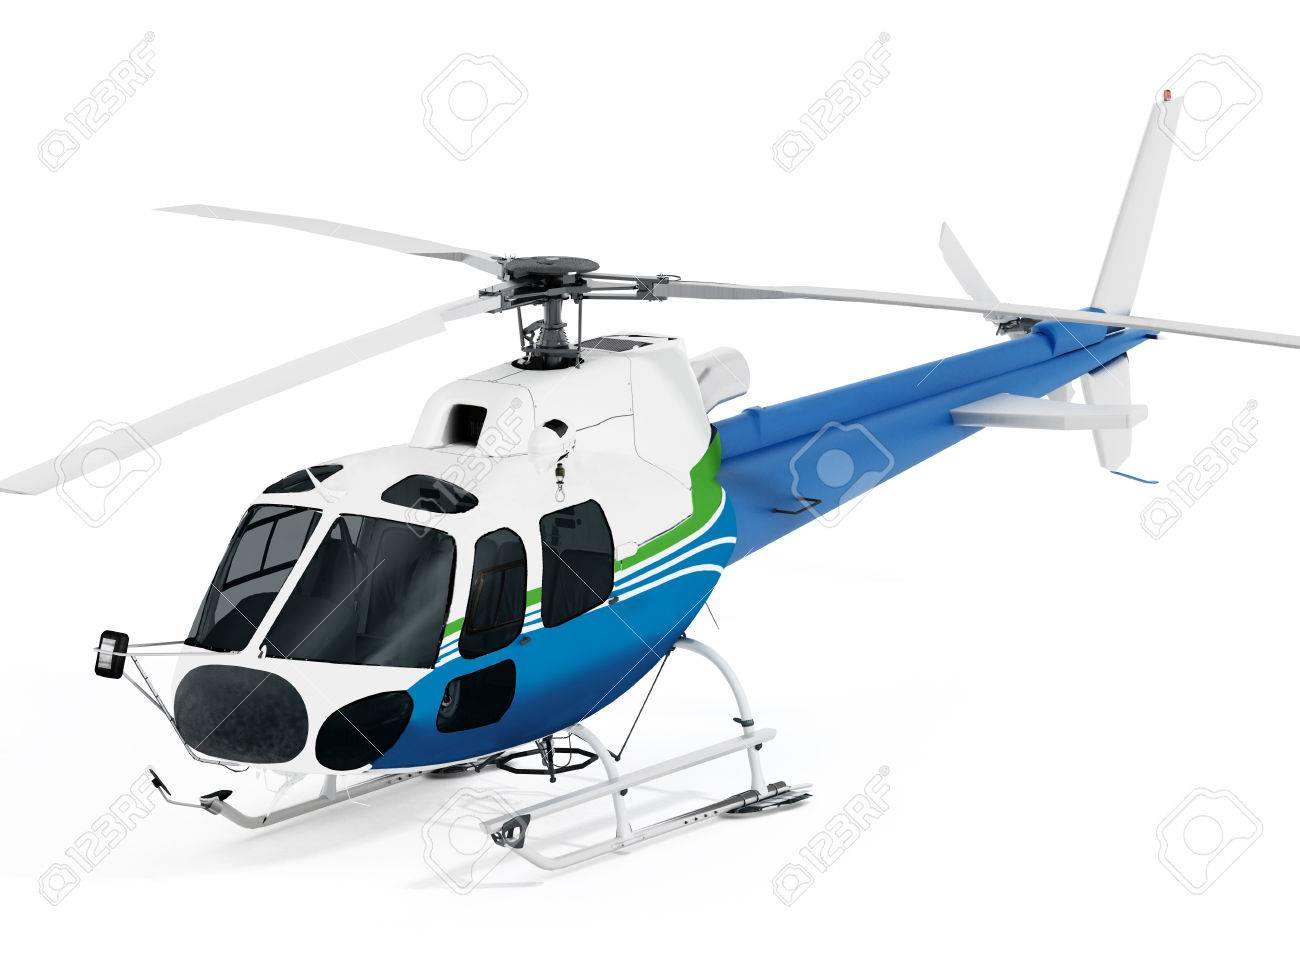 Helicopter isolated on white background. Stock Photo - 49034725